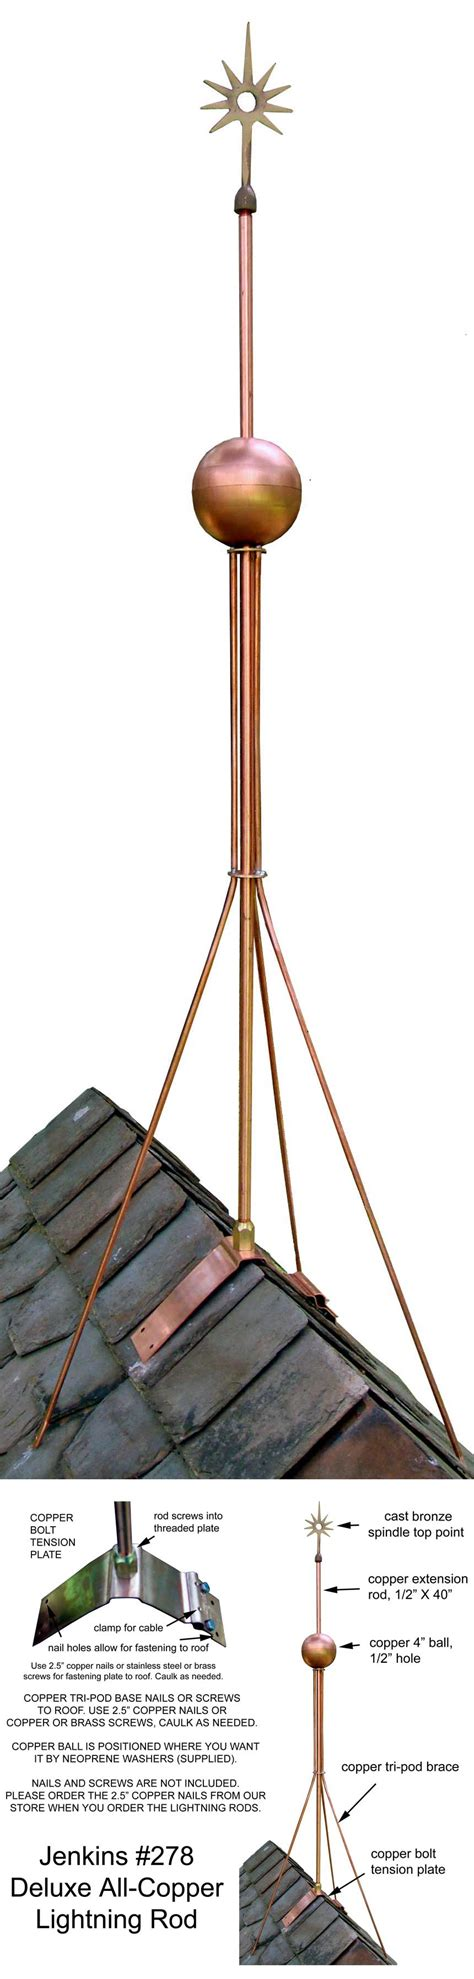 Slate Roof Warehouse #278 Deluxe Copper Lightning Rod Assembly SLATE ROOF WAREHOUSE